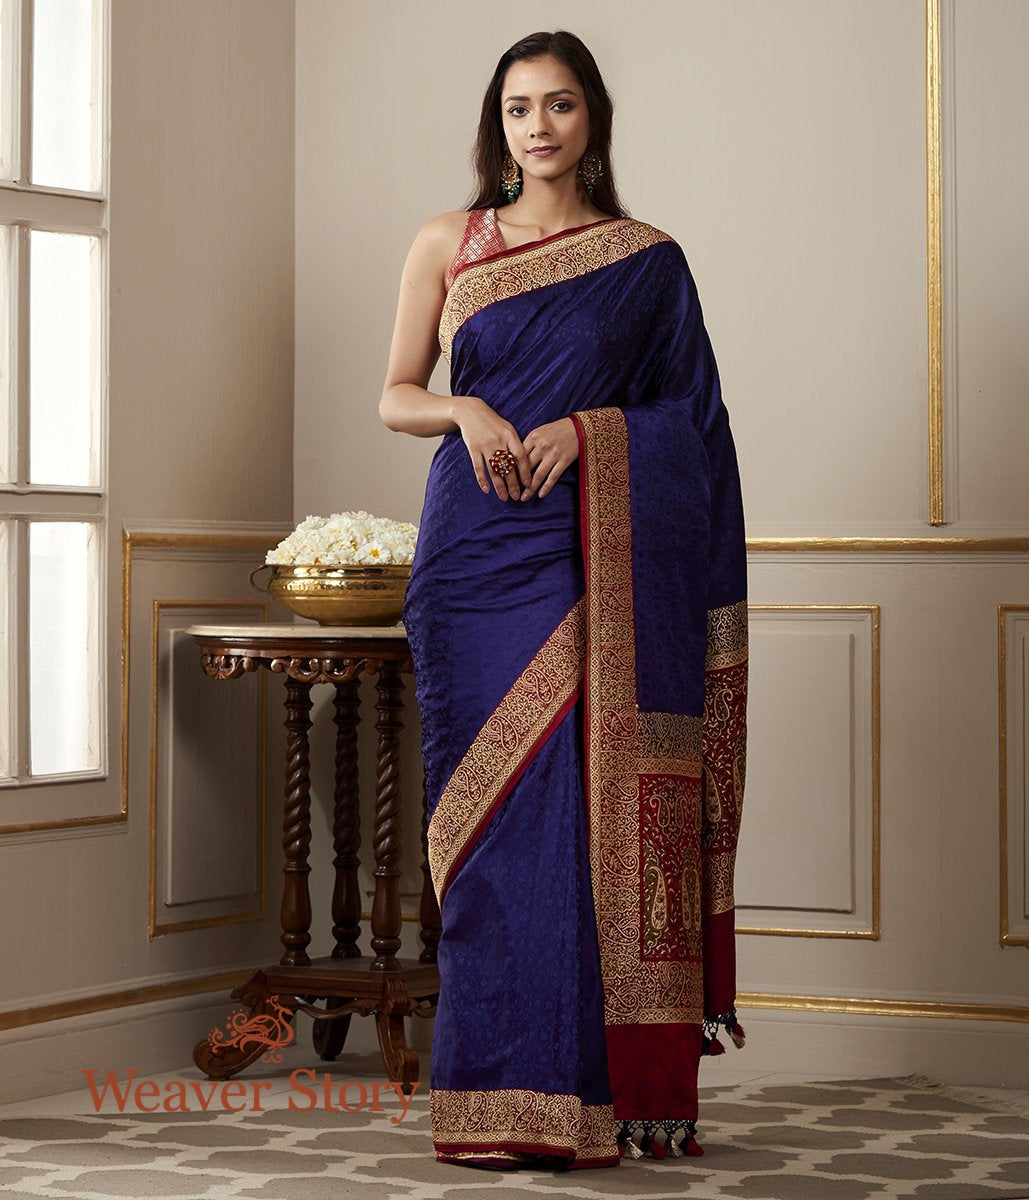 Handwoven Blue and Red Banarasi Valakalam Saree with Tanchoi Weave